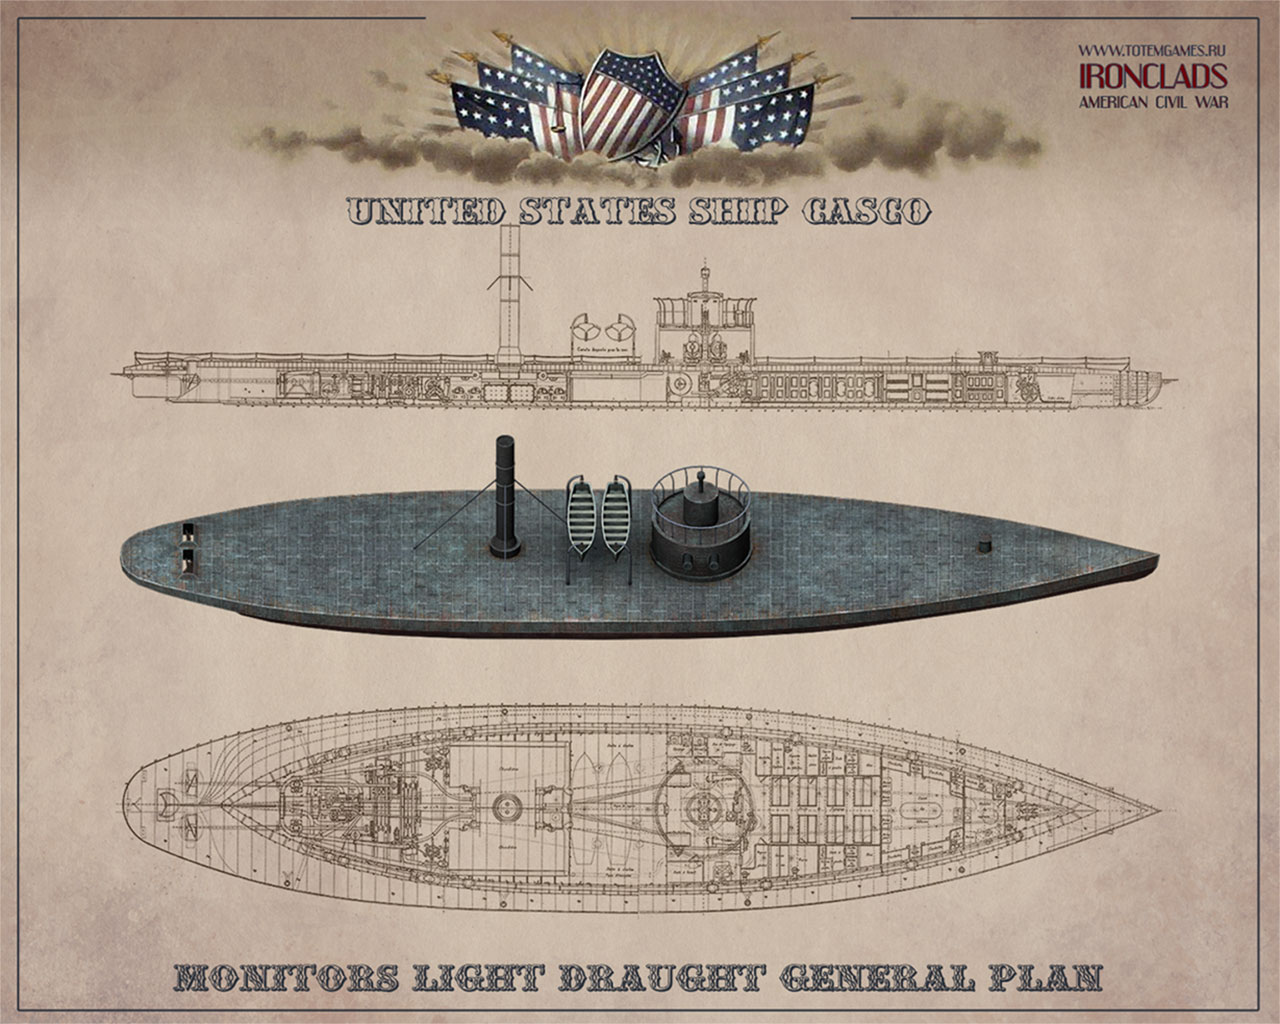 Ironclads American Civil War   wallpaper for the game wallpapers 1280x1024